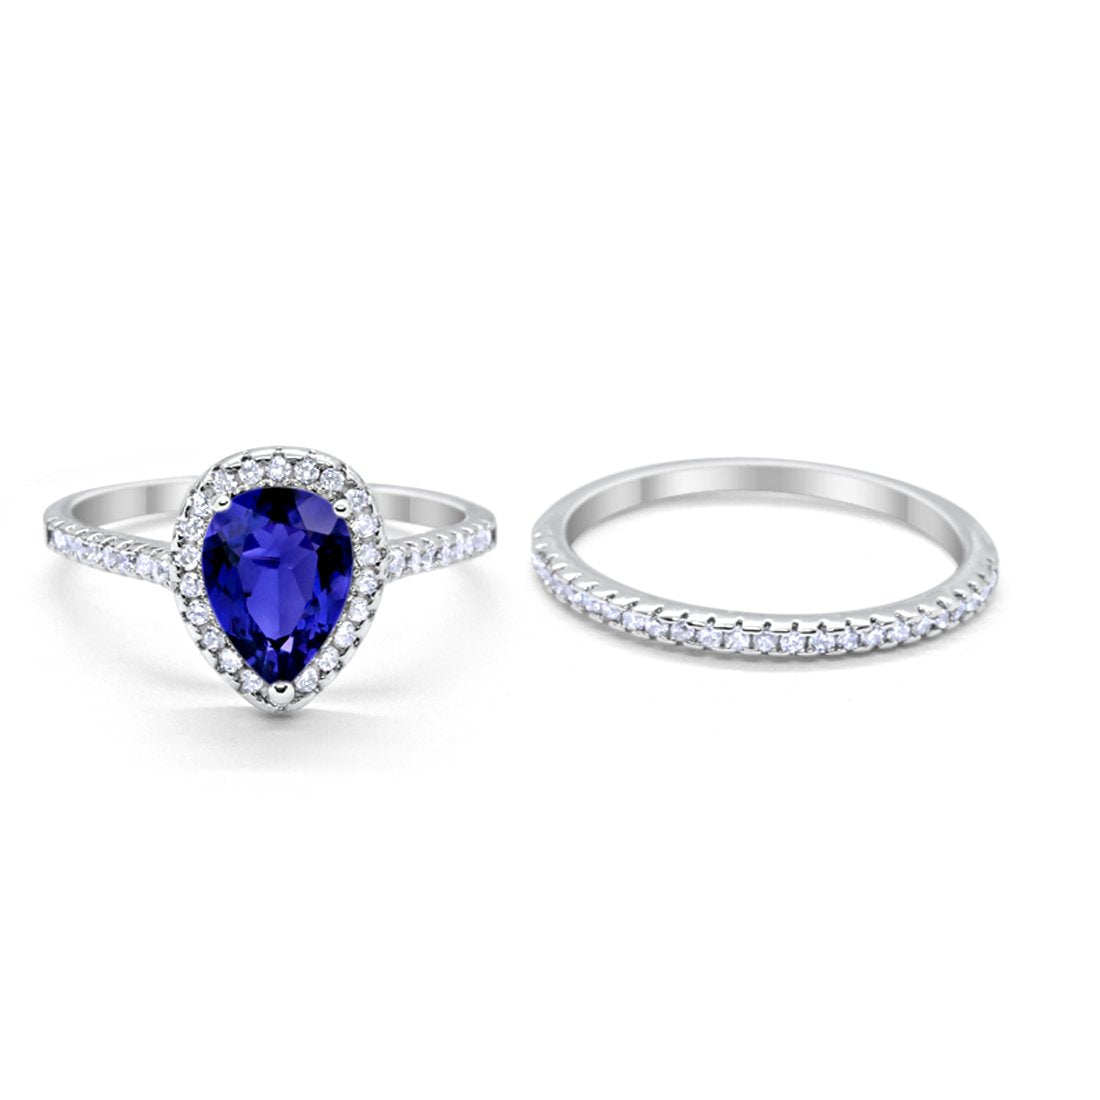 Teardrop Bridal Engagement Ring Simulated Blue Sapphire CZ 925 Sterling Silver